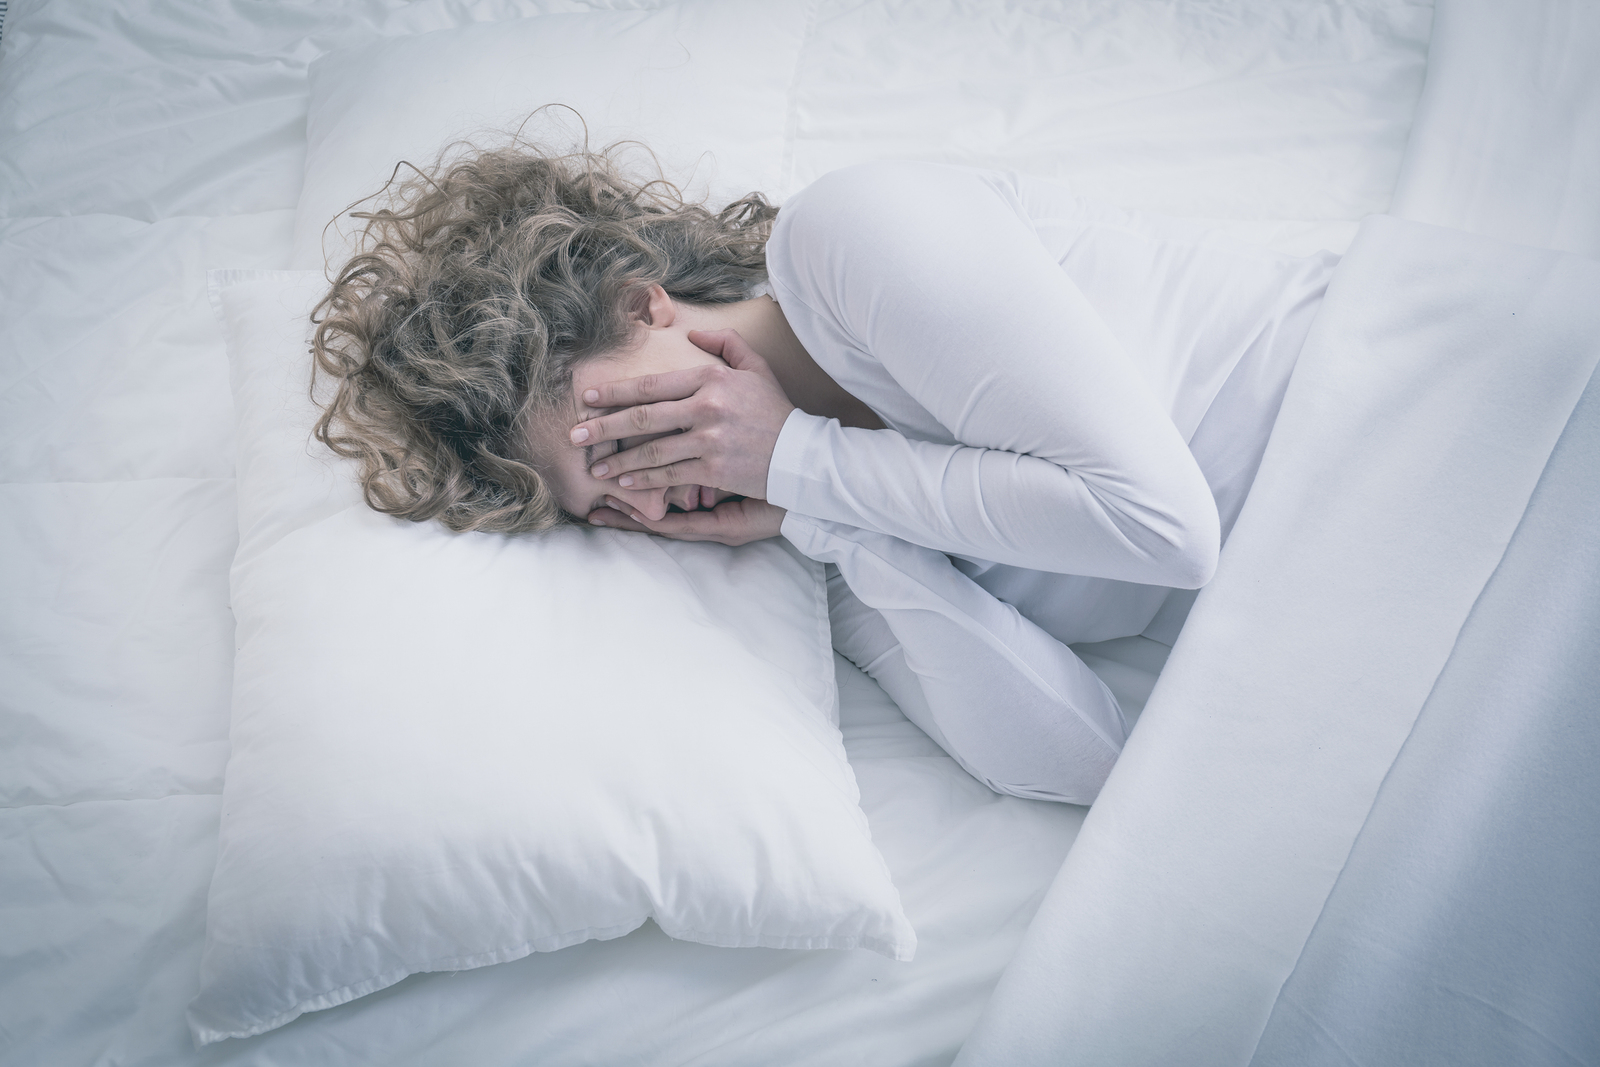 Depressed Woman not Sleeping All Day